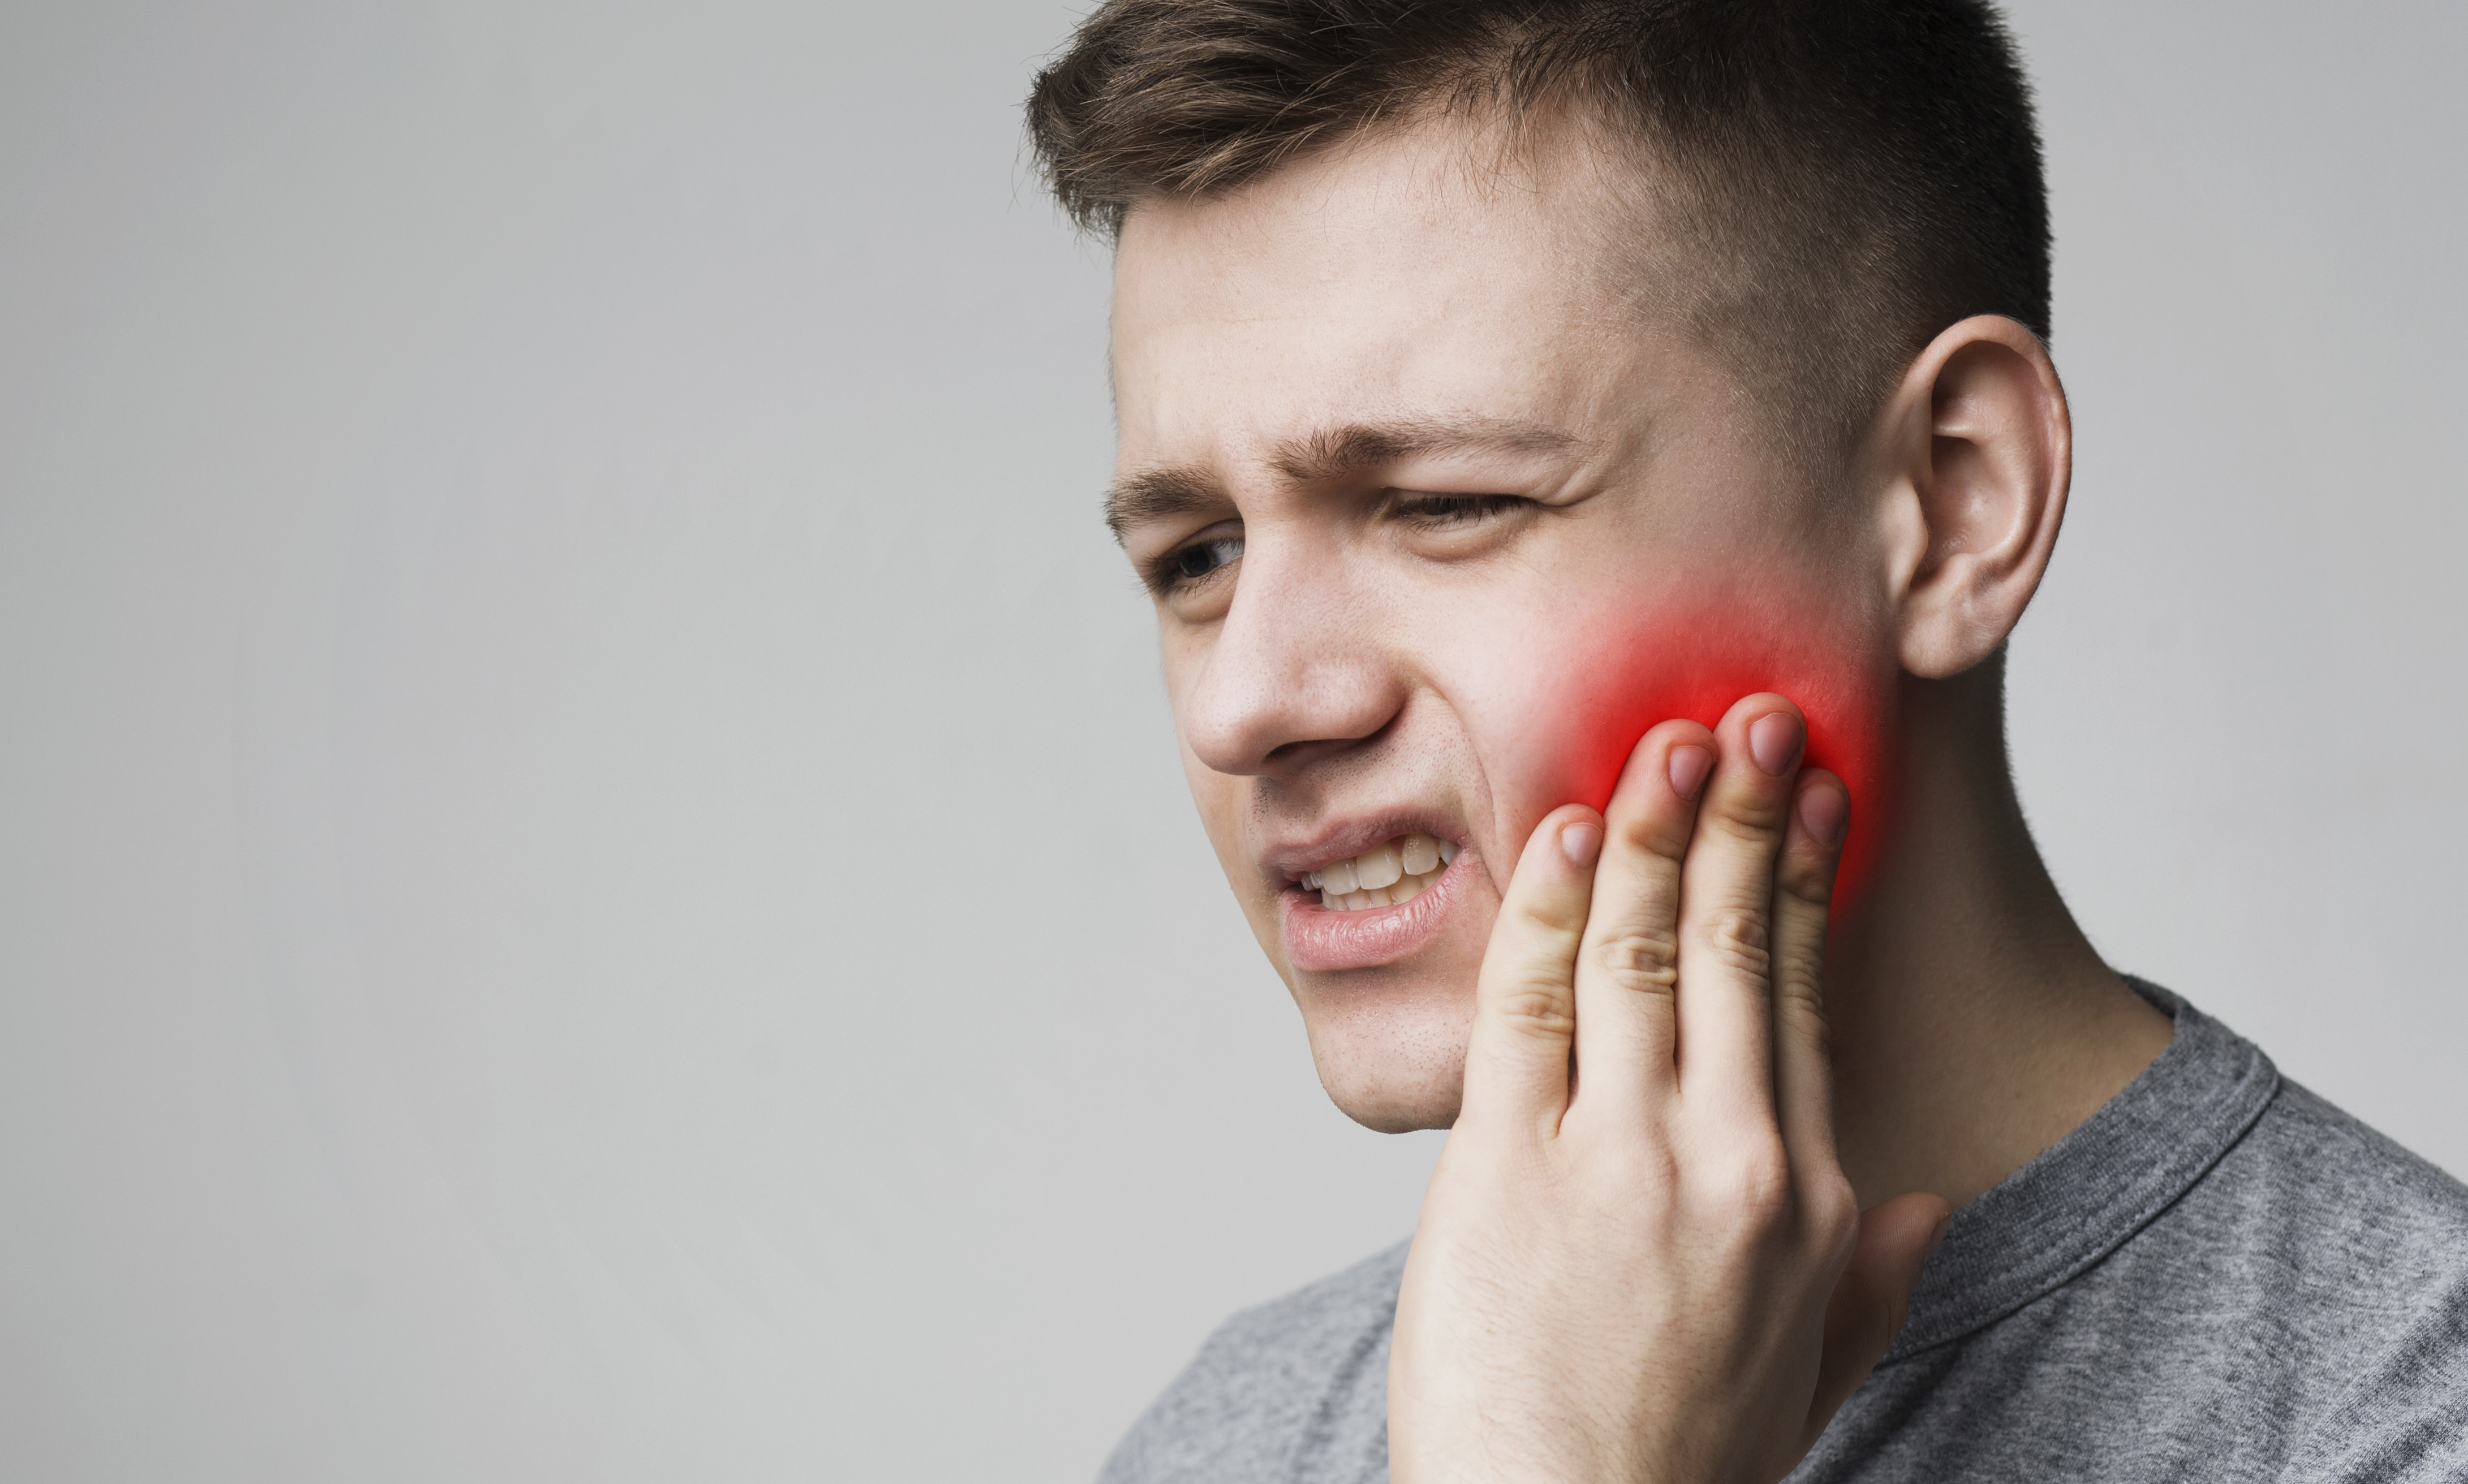 man touching jaw and grimacing